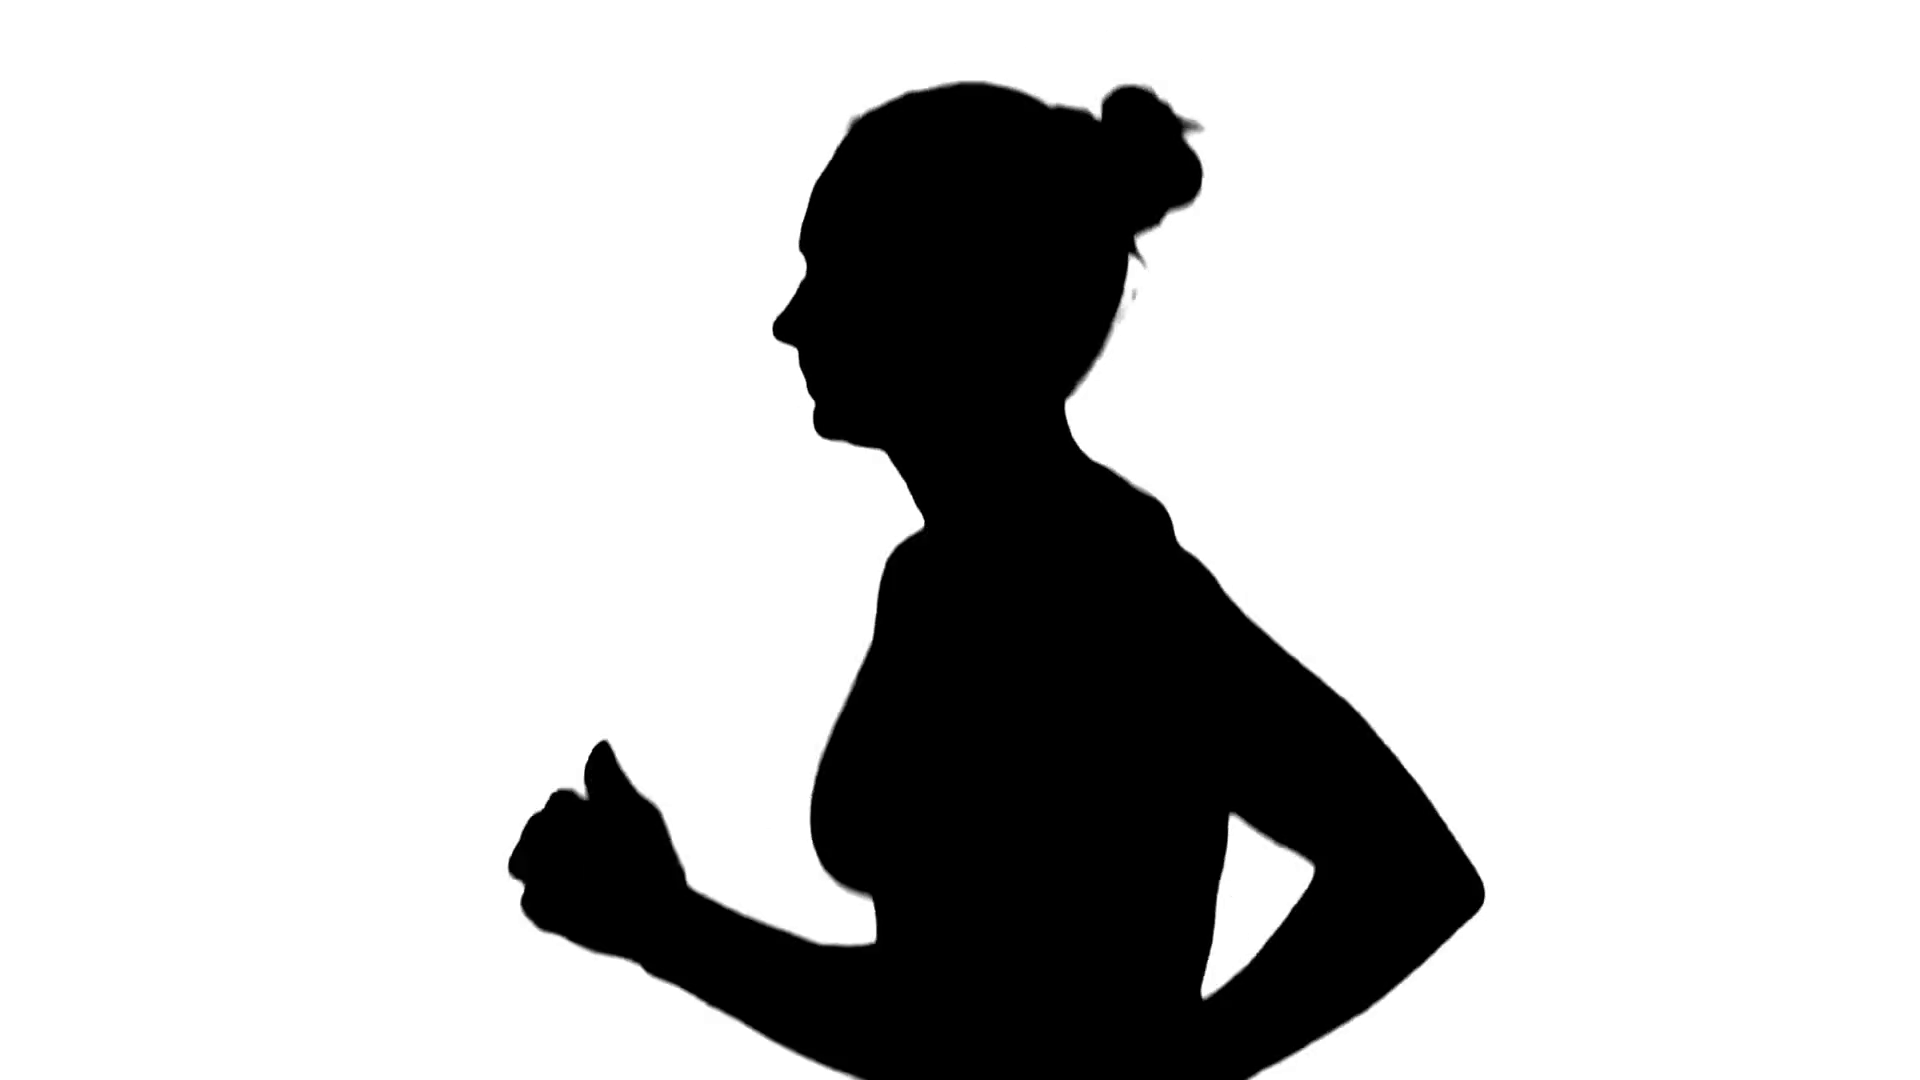 1920x1080 Girl With Athletic Body Running. Side View. Silhouette. White